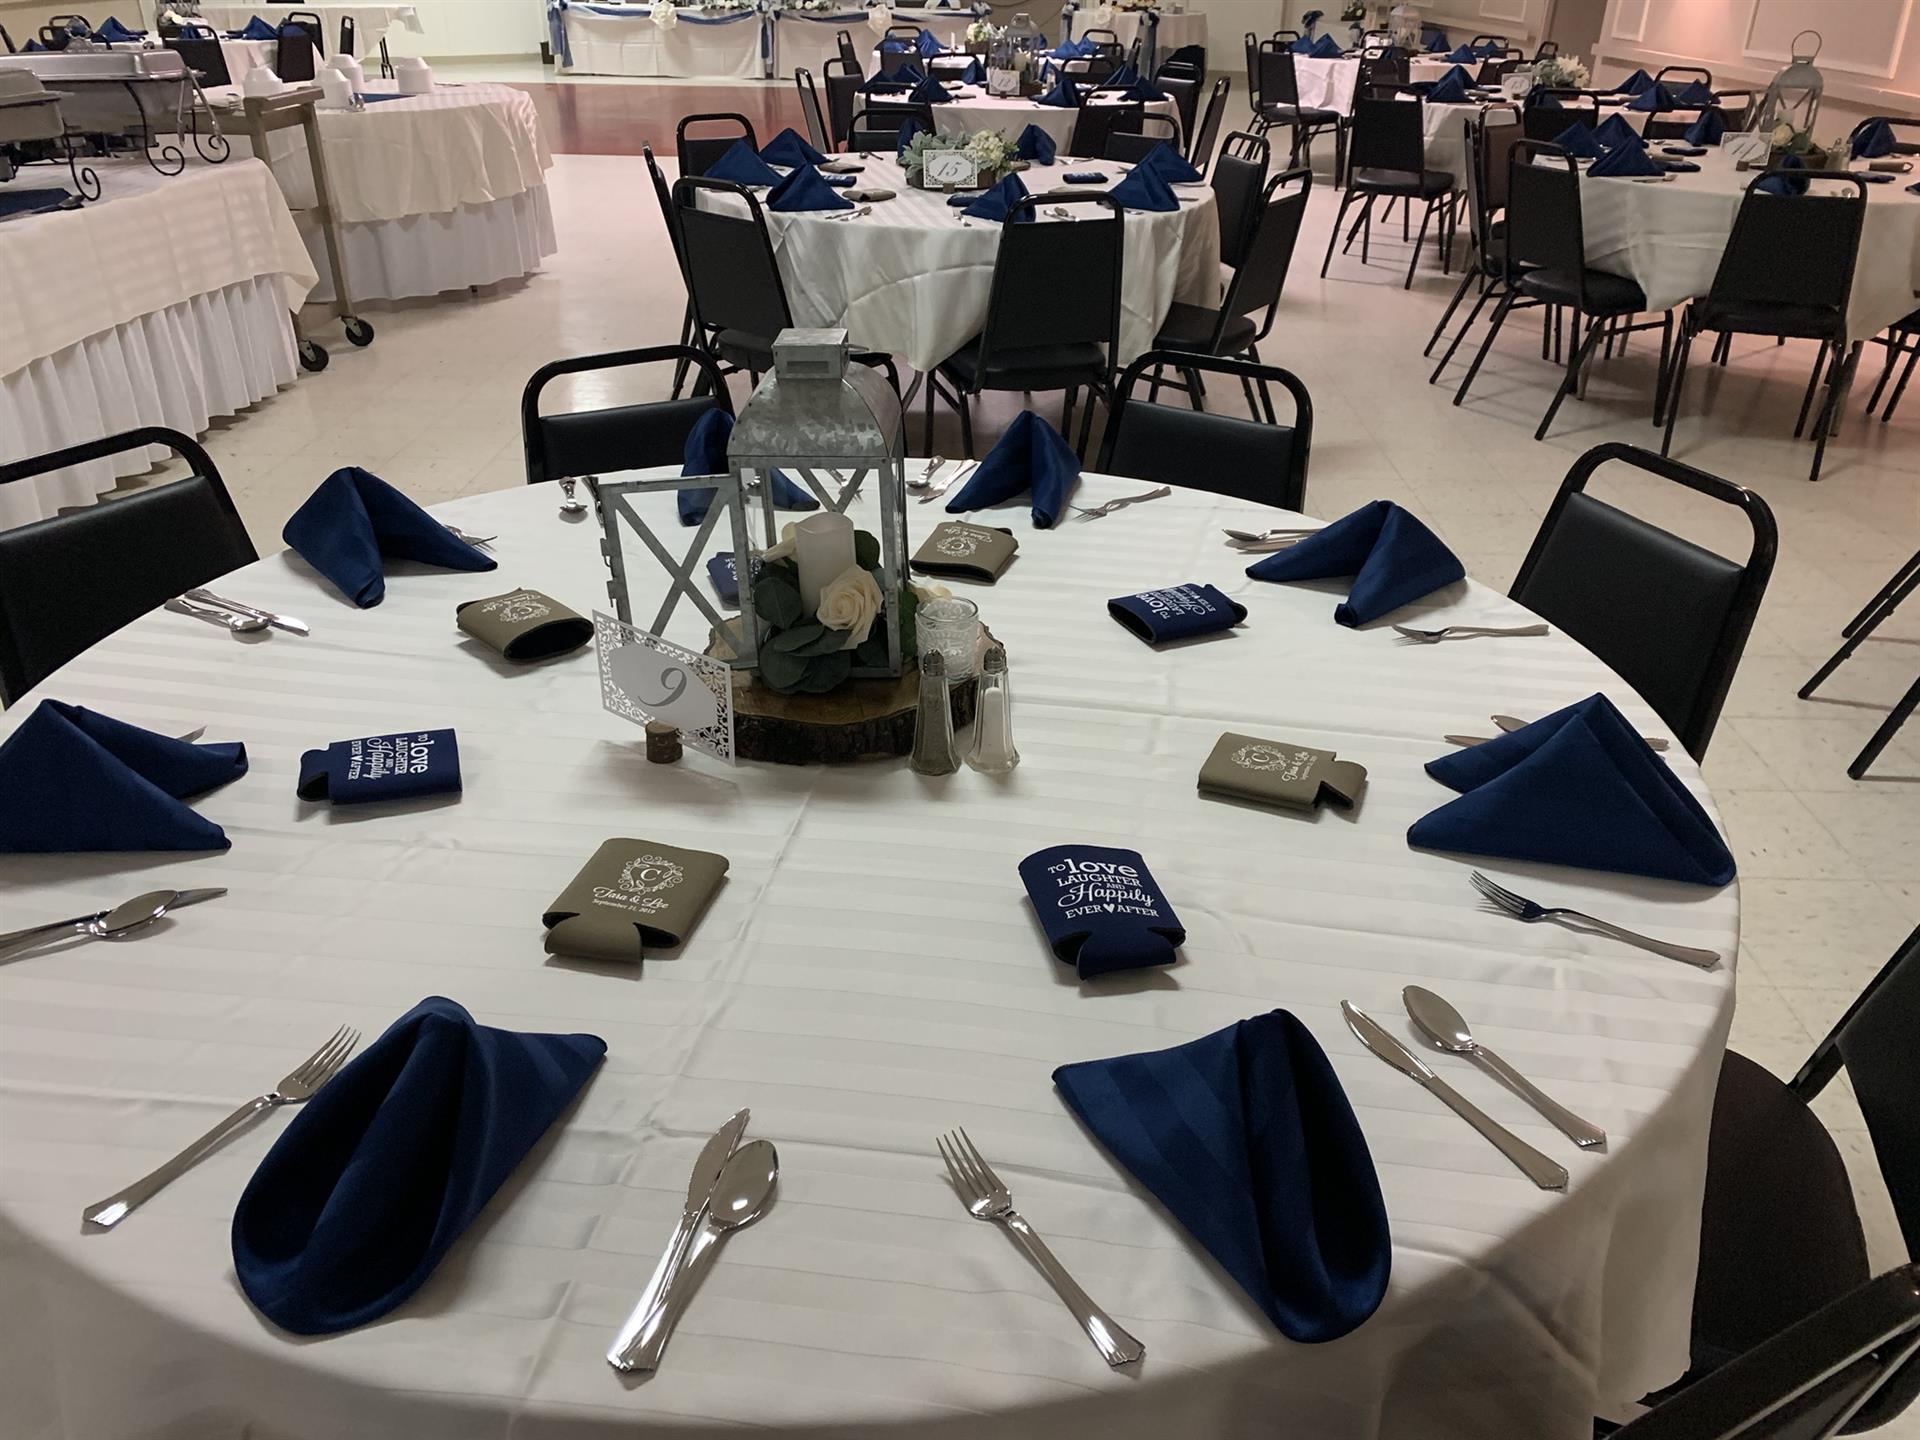 A round table set with napkins and silverware.